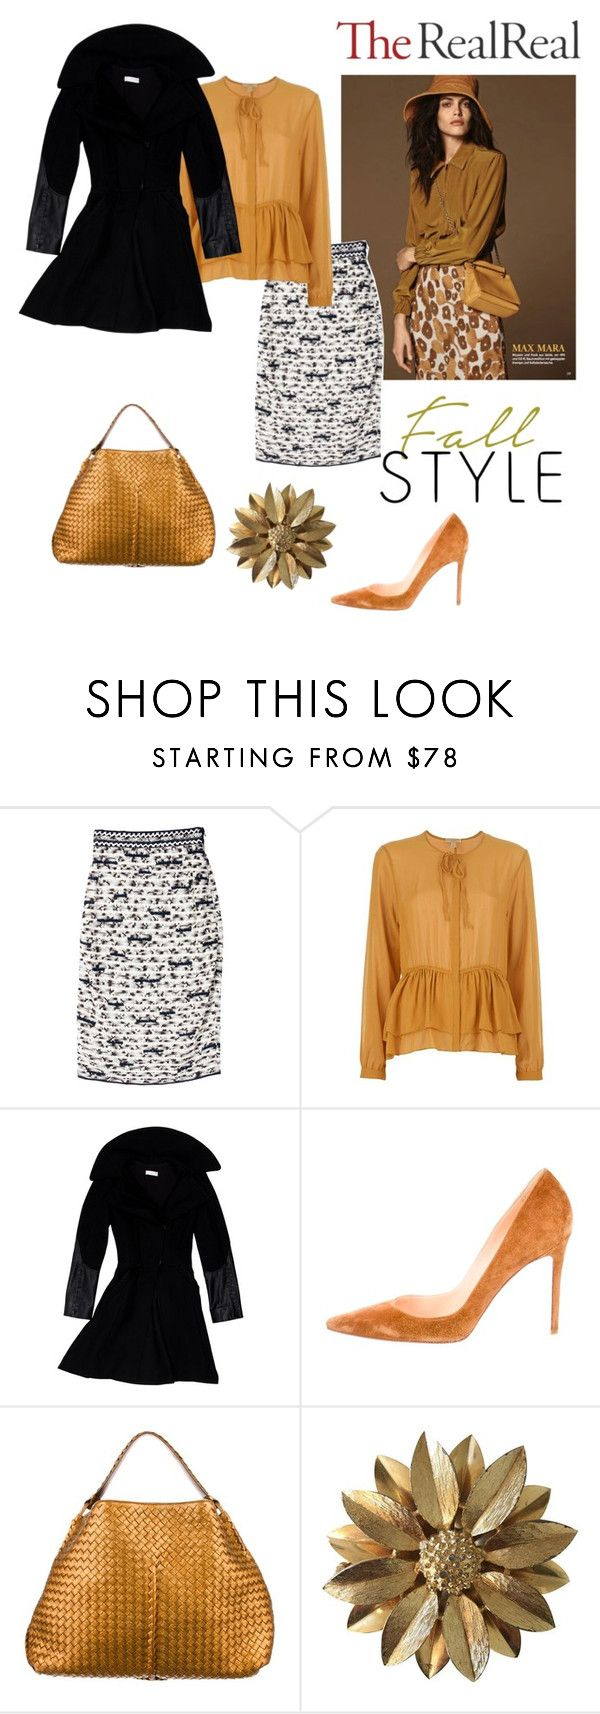 """""""Fall Style With The RealReal: Contest Entry"""" by rossvanderh ❤ liked on Polyvore featuring Oscar de la Renta, Burberry, Altuzarra, Christian Louboutin, Bottega Veneta and Sarah Coventry"""